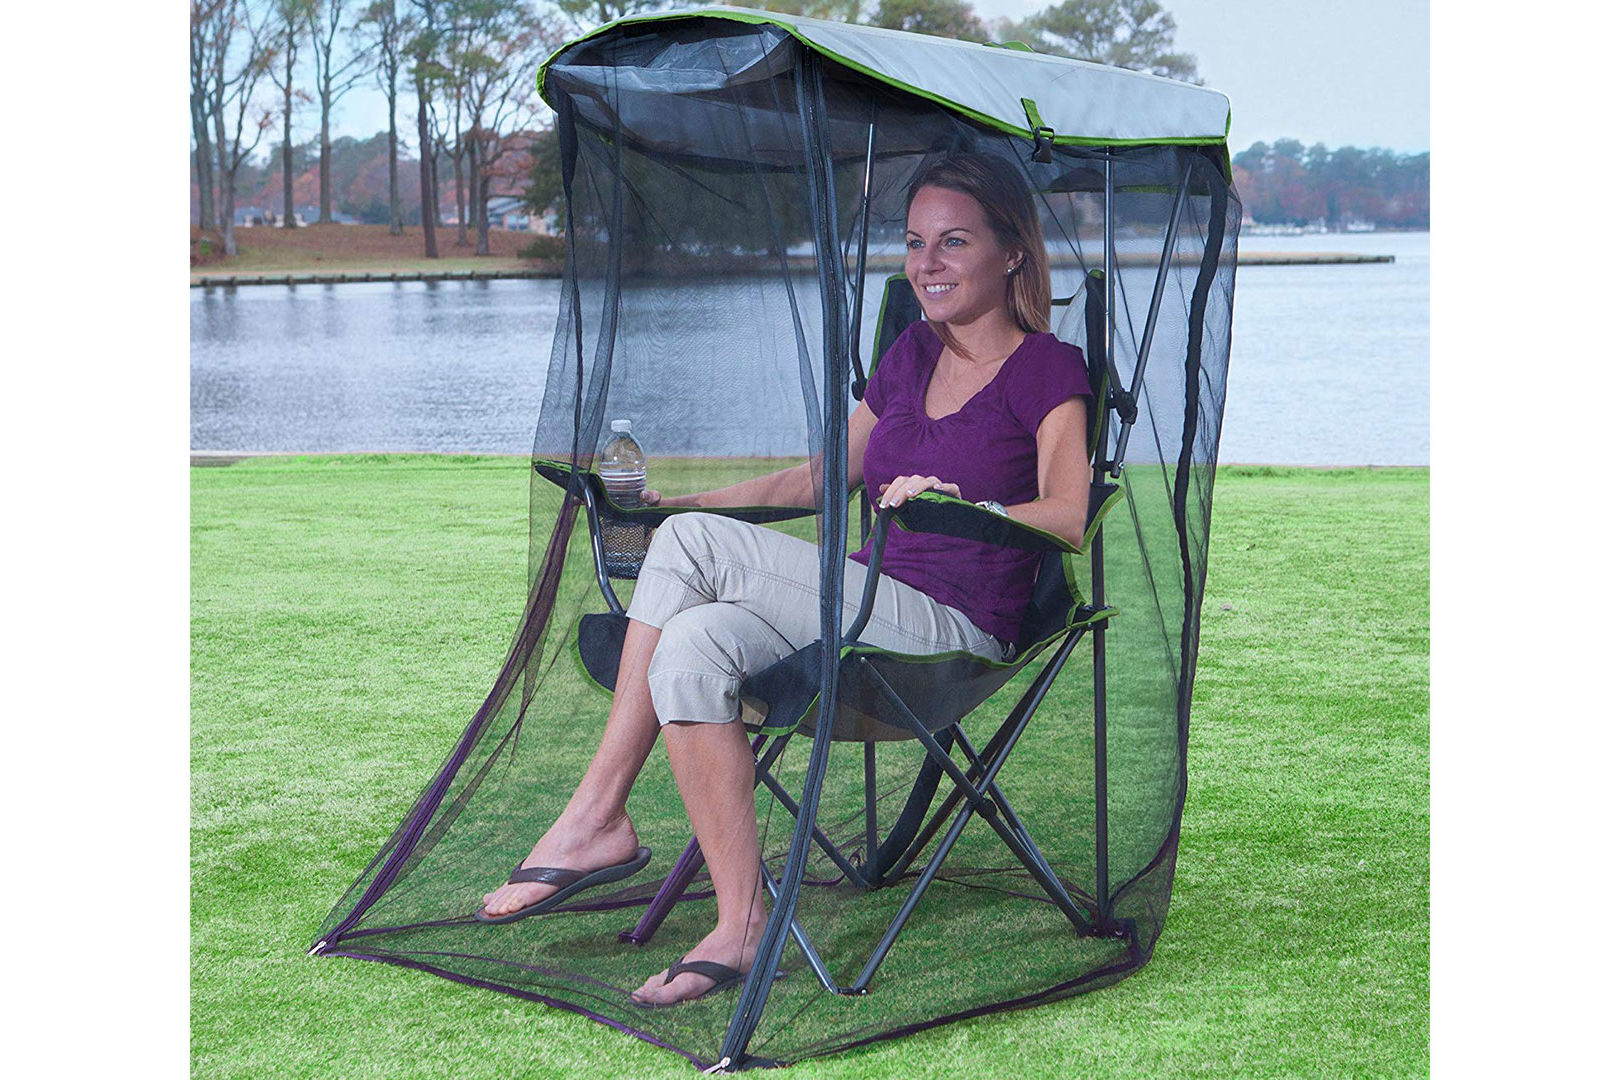 This Foldable Canopy Chair with Bug Netting Just Changed Summertime Sitting for Good